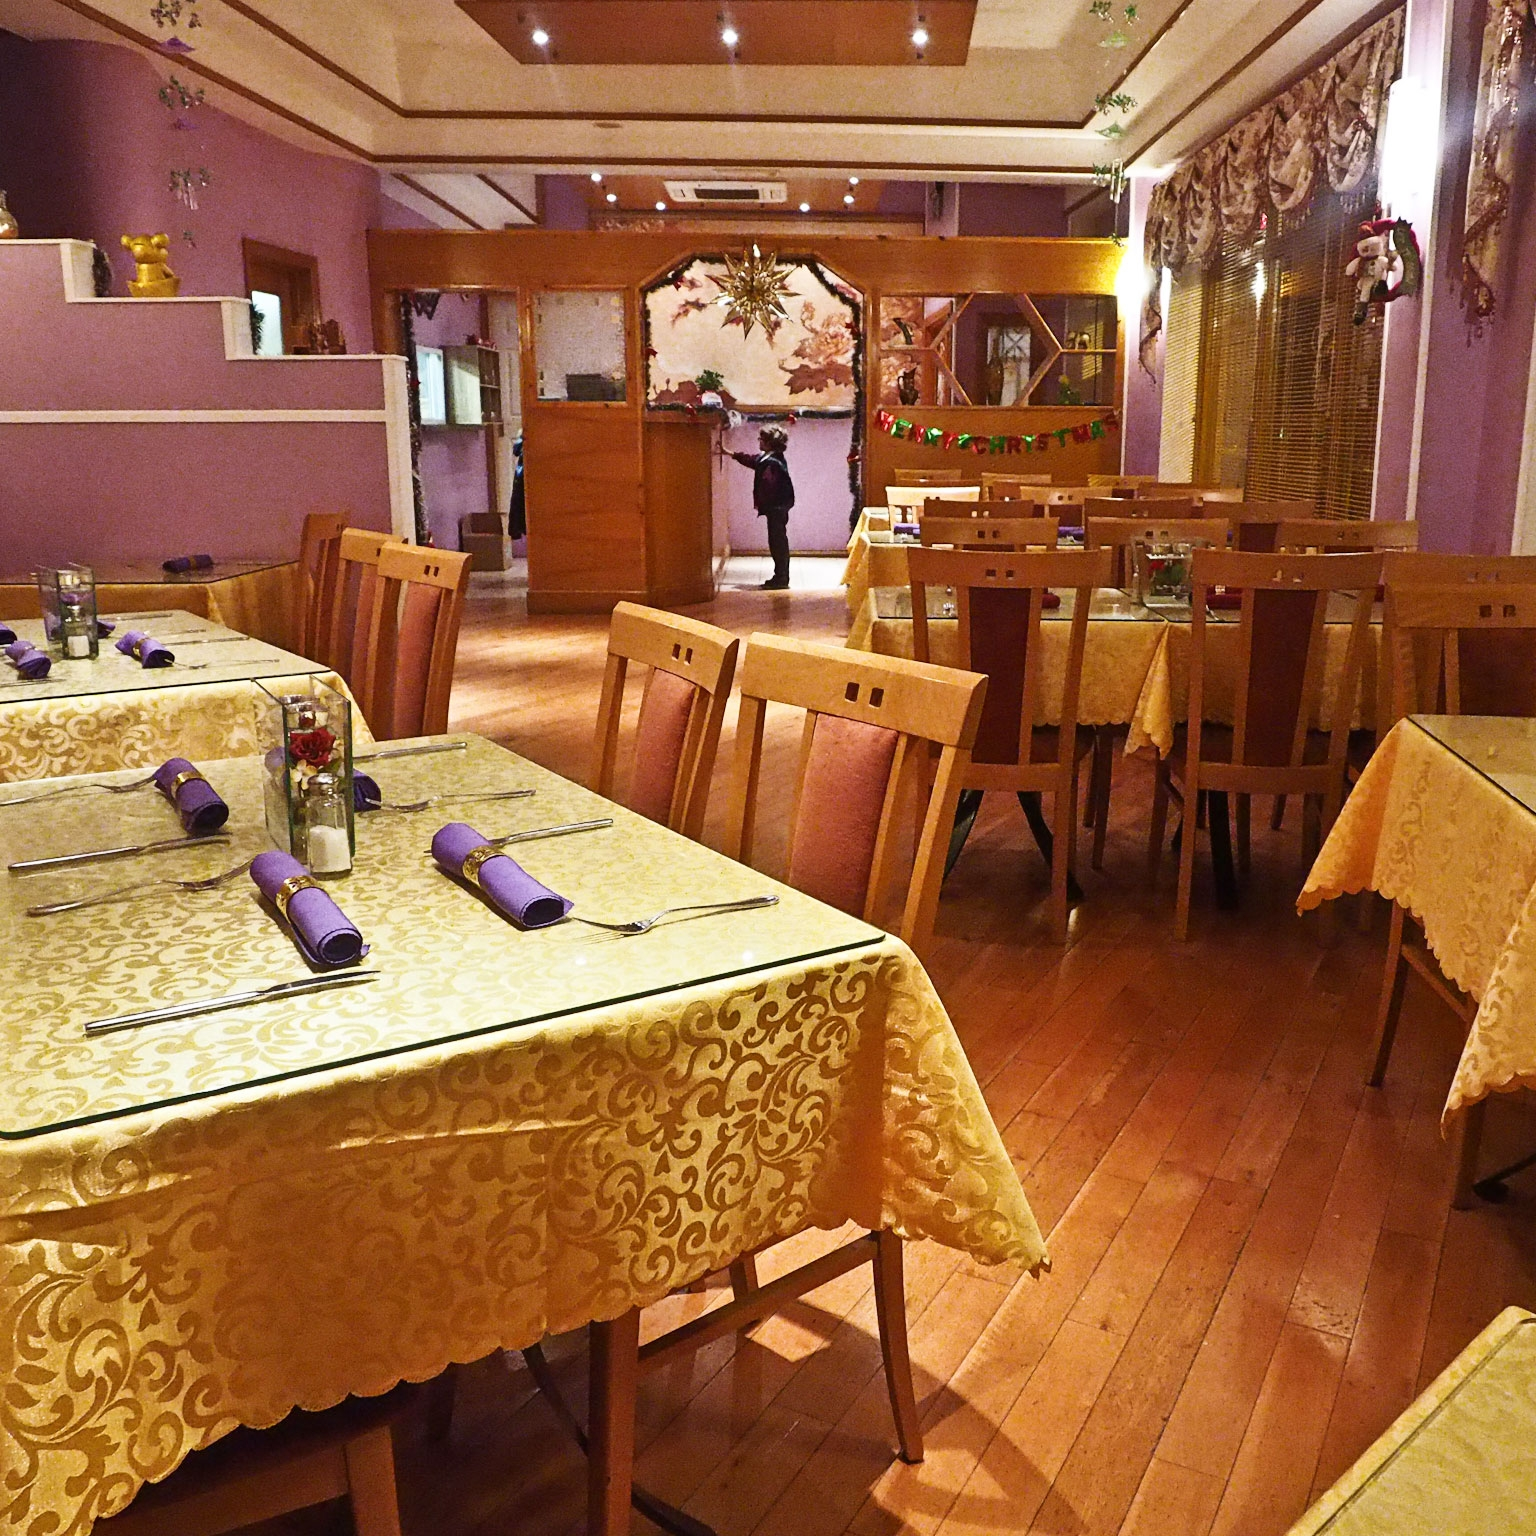 Wing-Hung-Chinese-Restaurant-Boyle-County-Roscommon